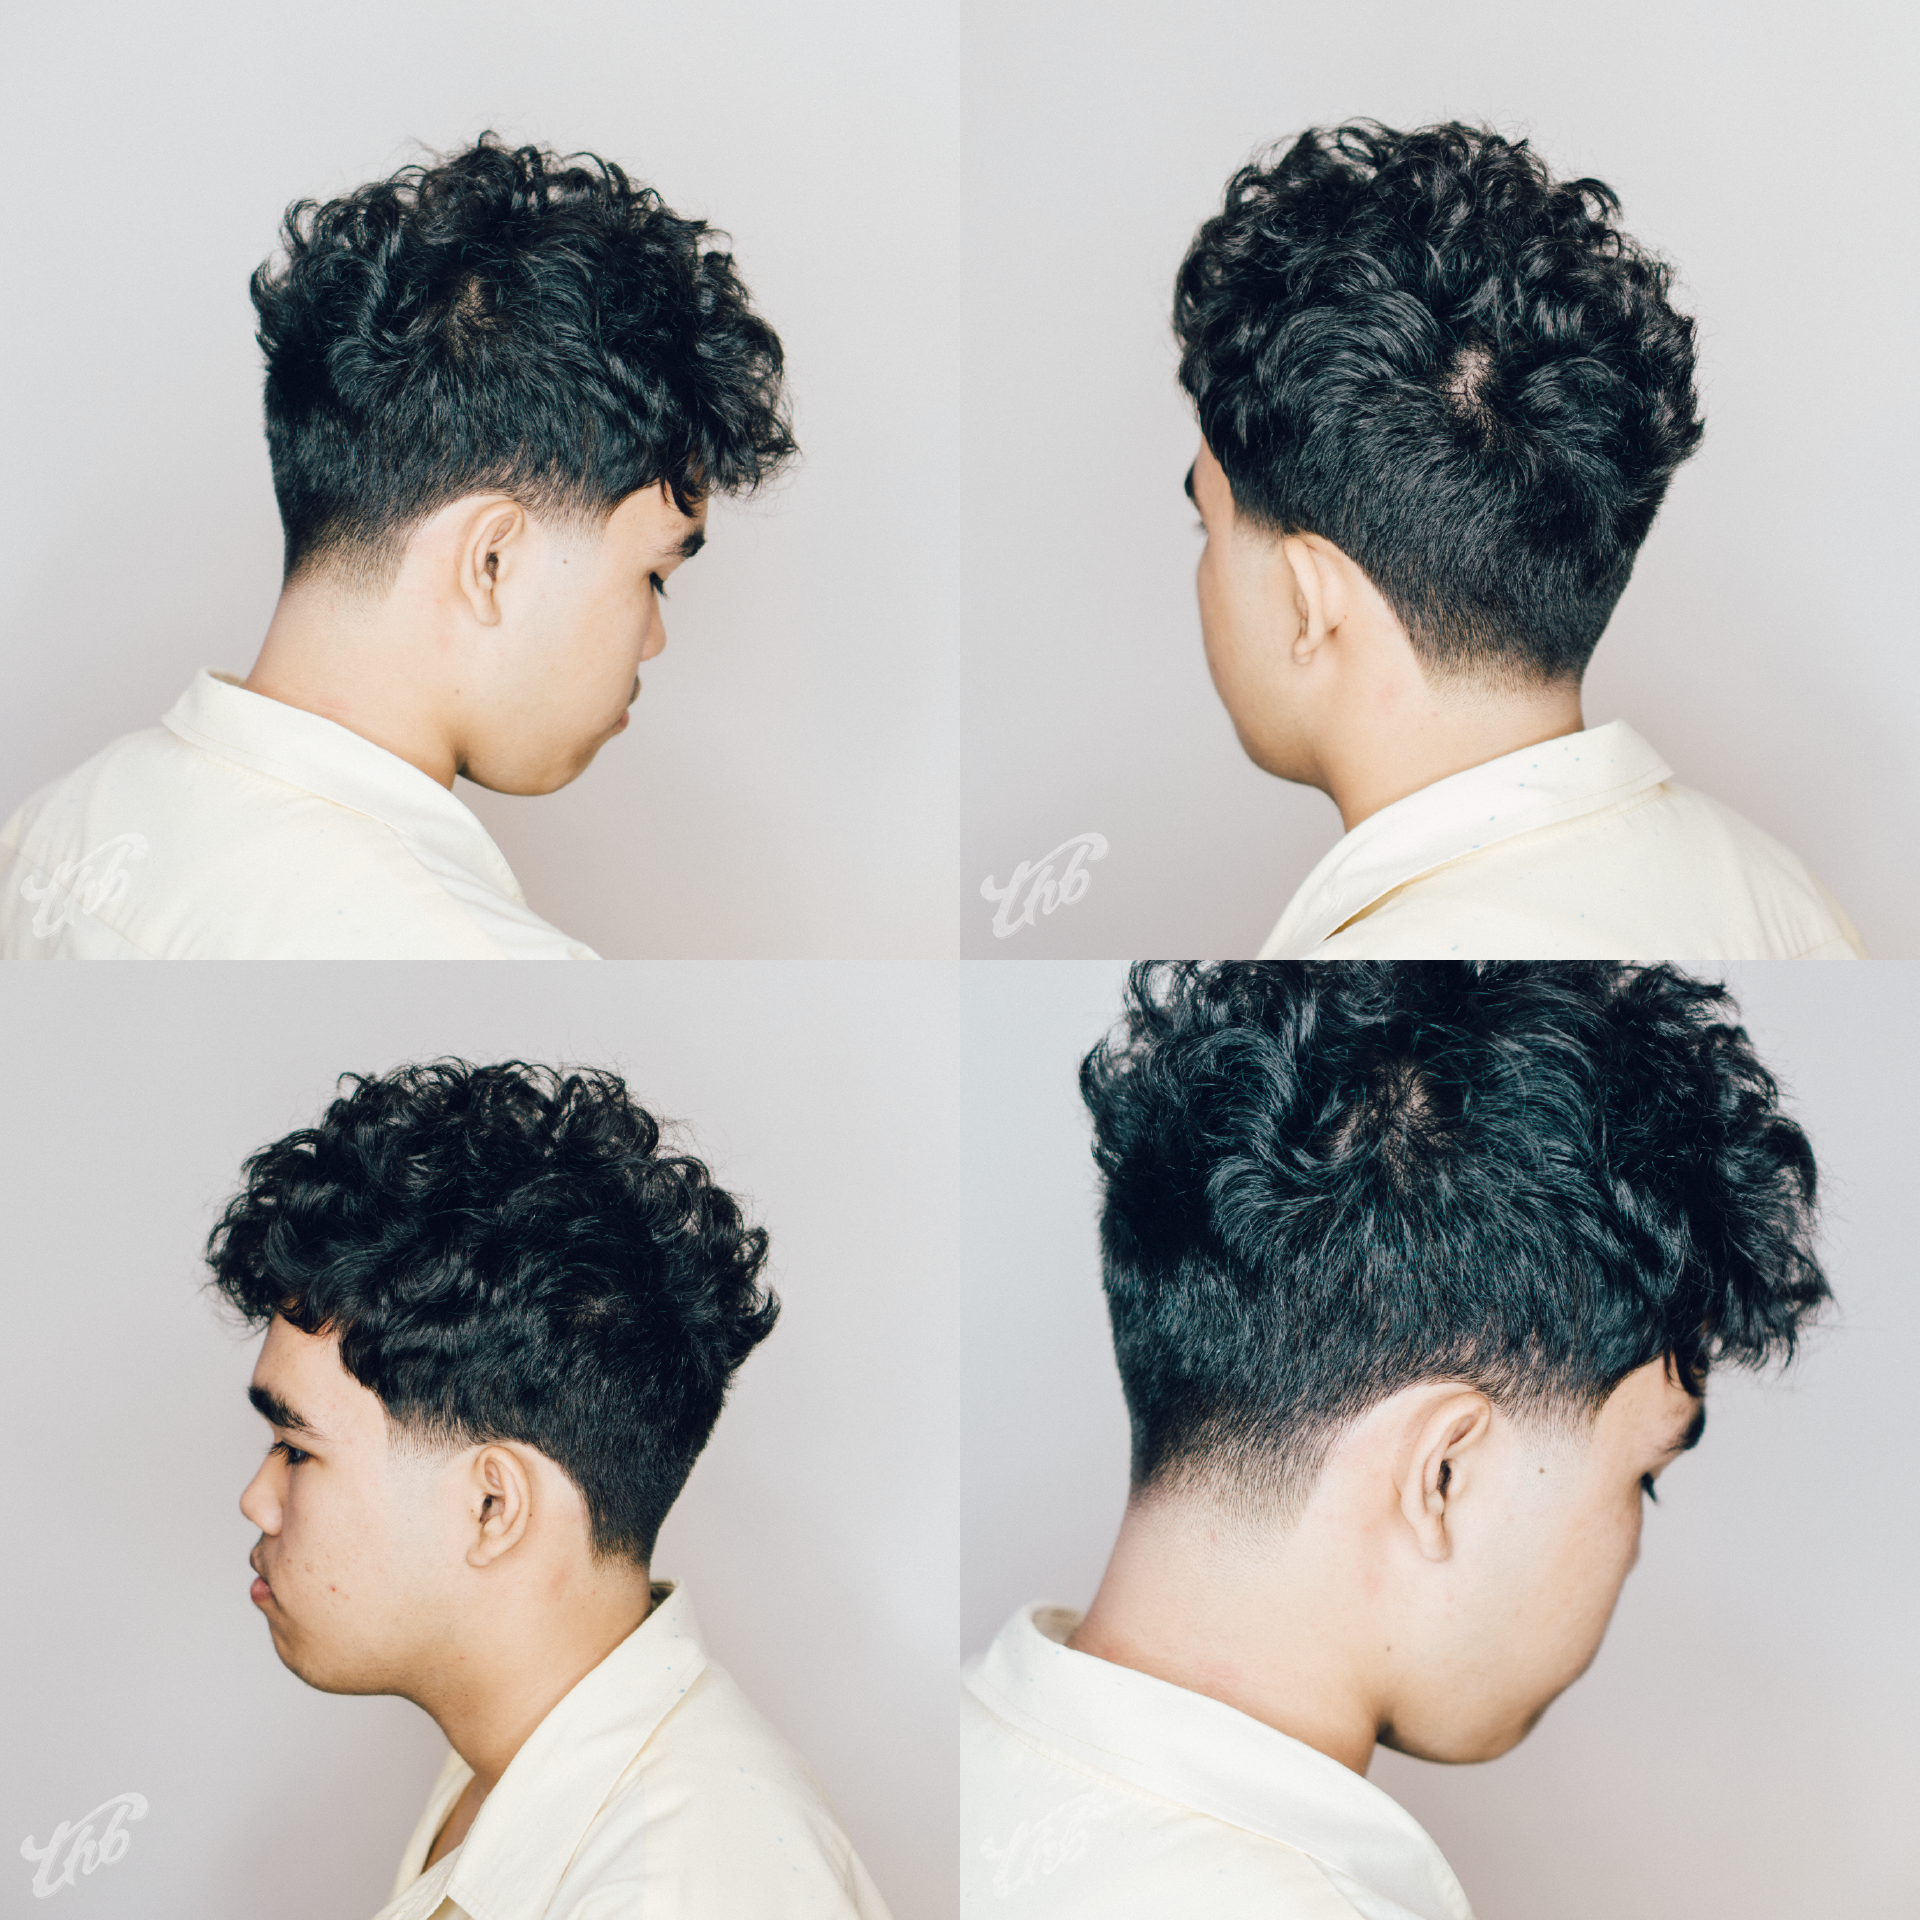 haircut by barber wilson (@wilson_thebarber) asian taper